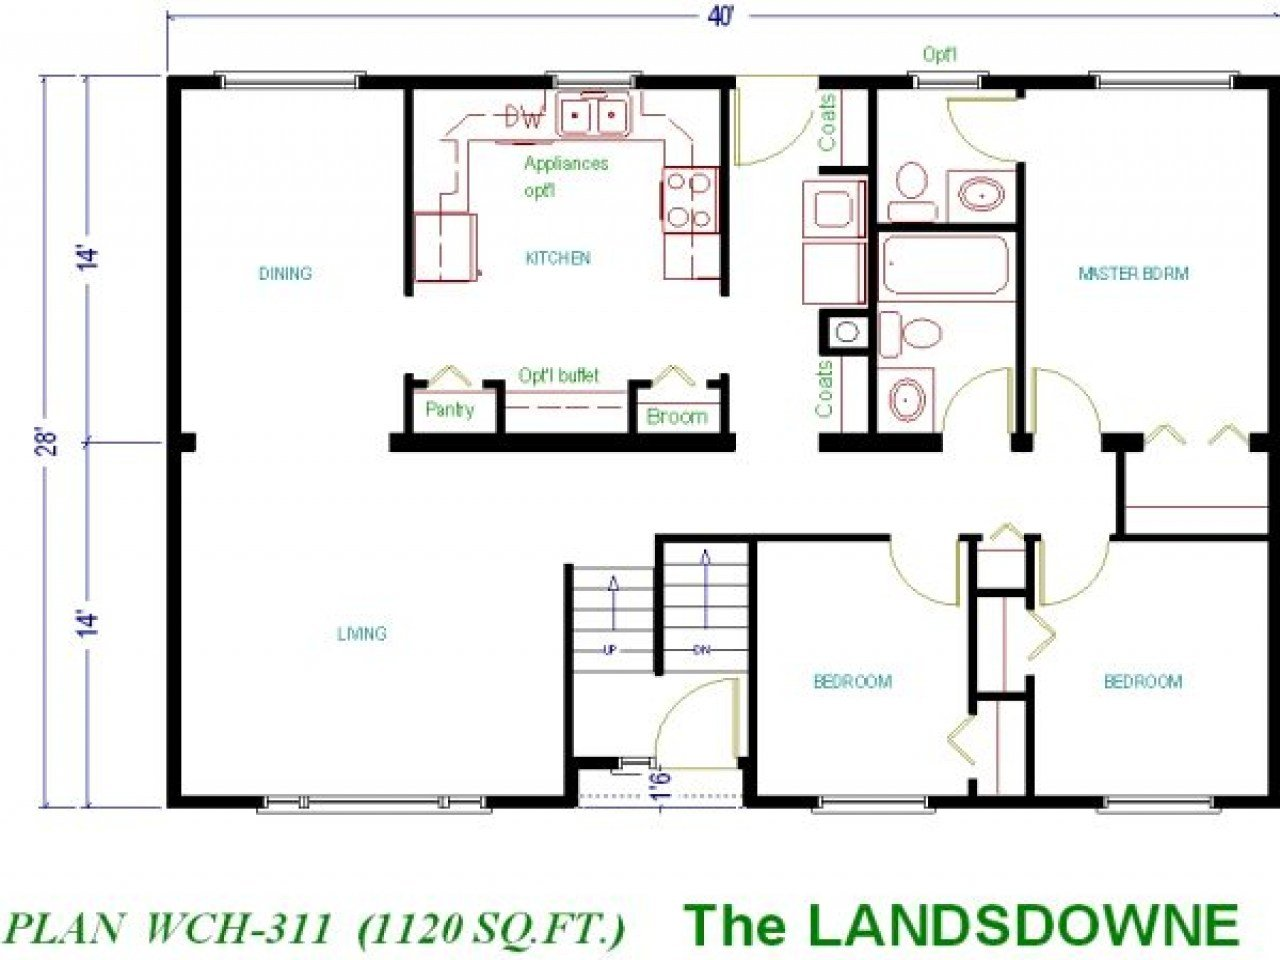 Best House Plans Under 1000 Sq Ft House Plans Under 1000 Square With Pictures